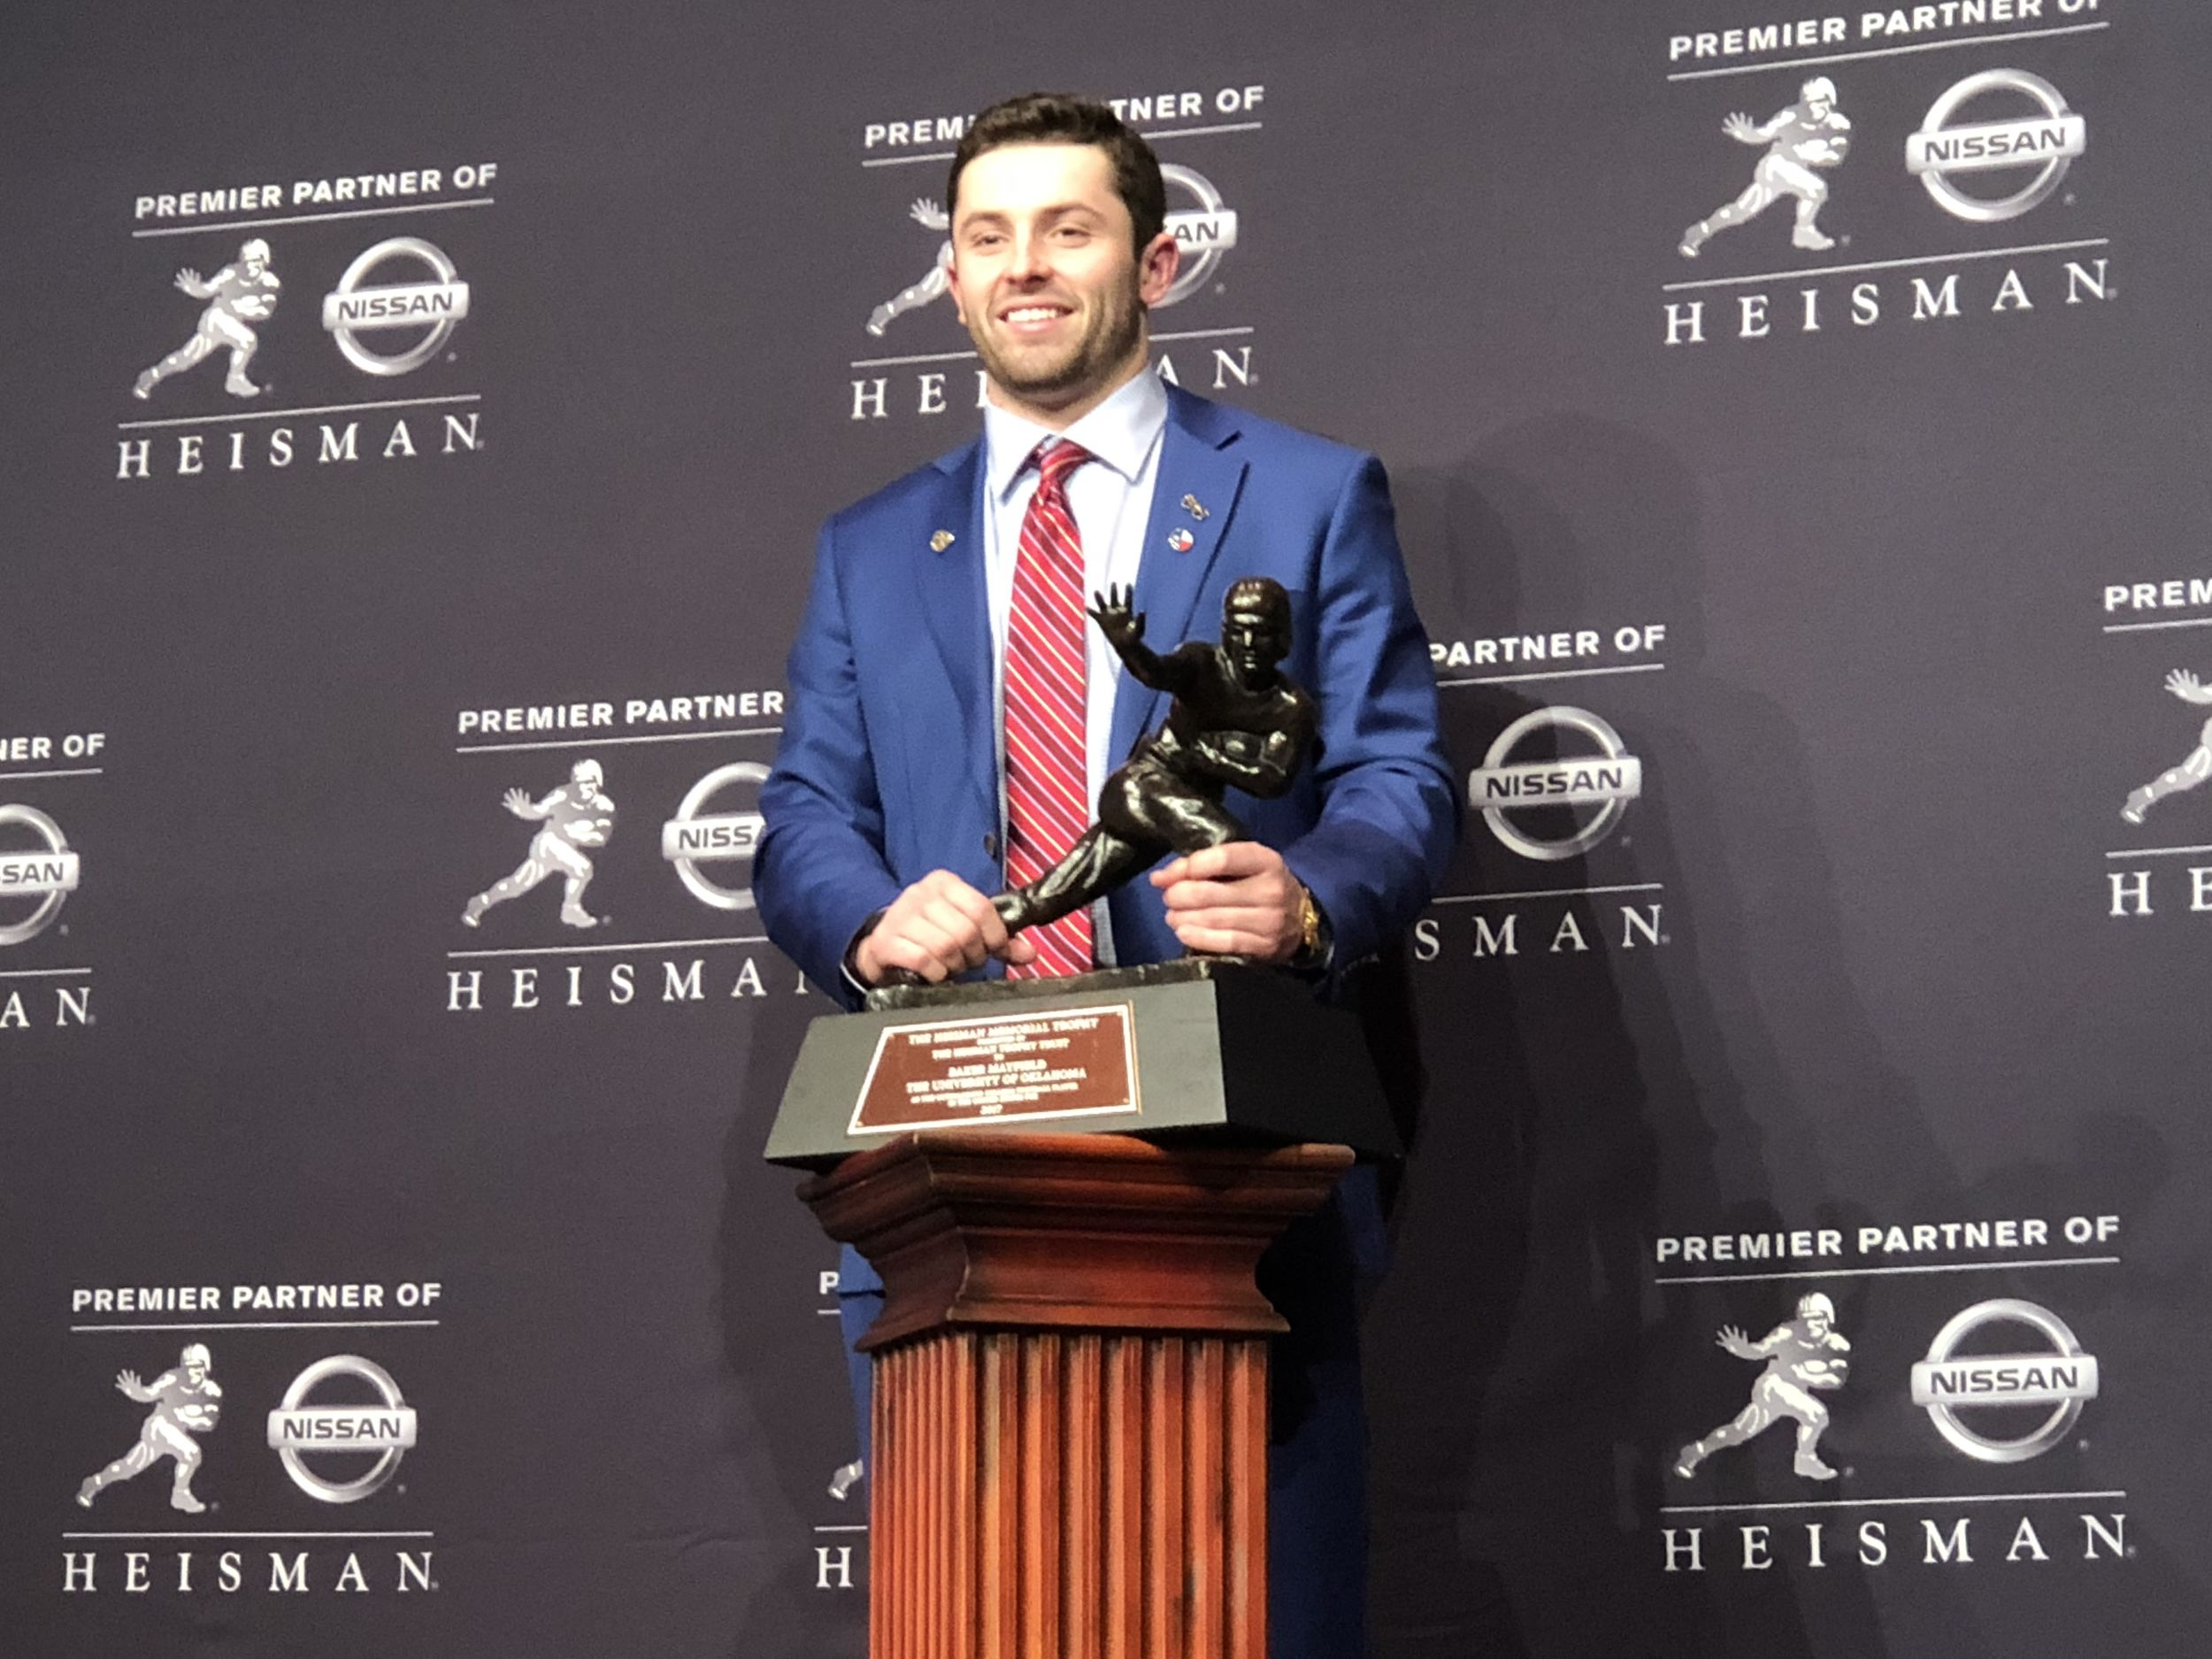 Hanging with his Heisman